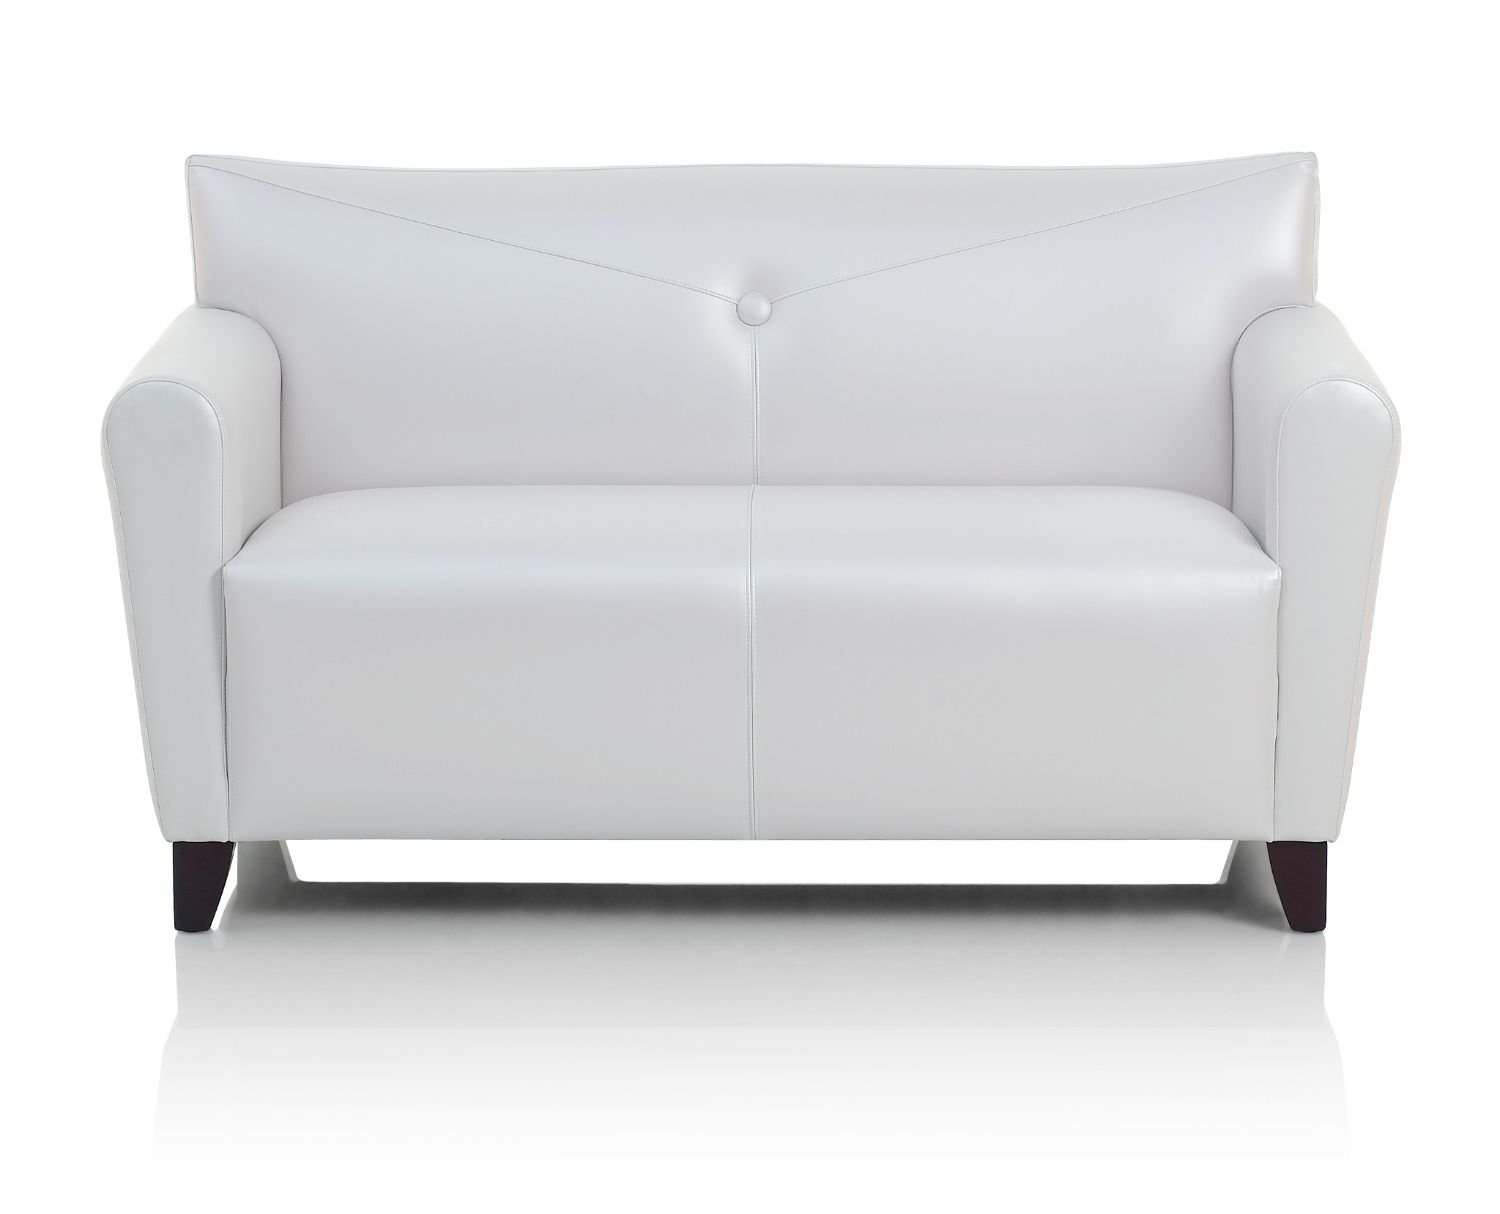 Ki Furniture Mesa™ Loveseat | Wayfair For Mesa Foam Oversized Sofa Chairs (Image 11 of 25)